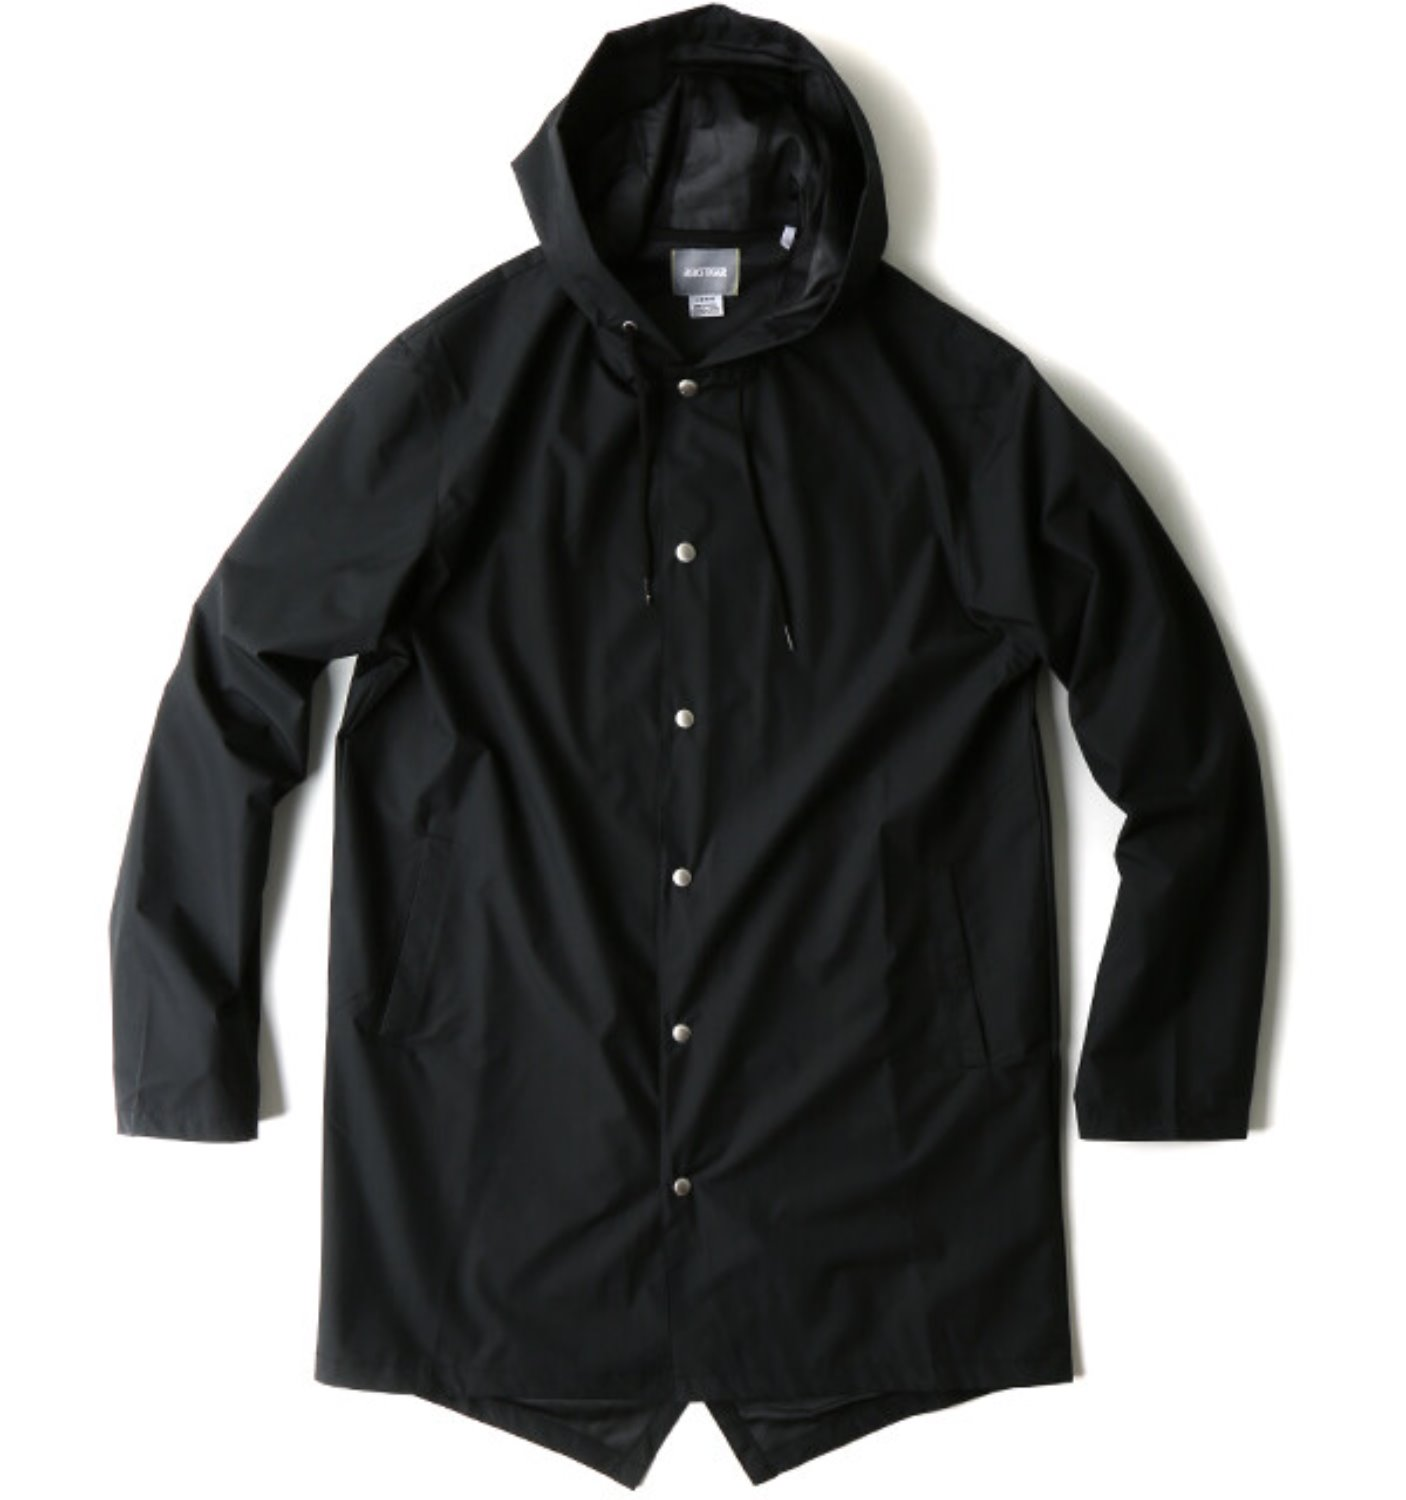 BL LONG COACH JKT BLACK